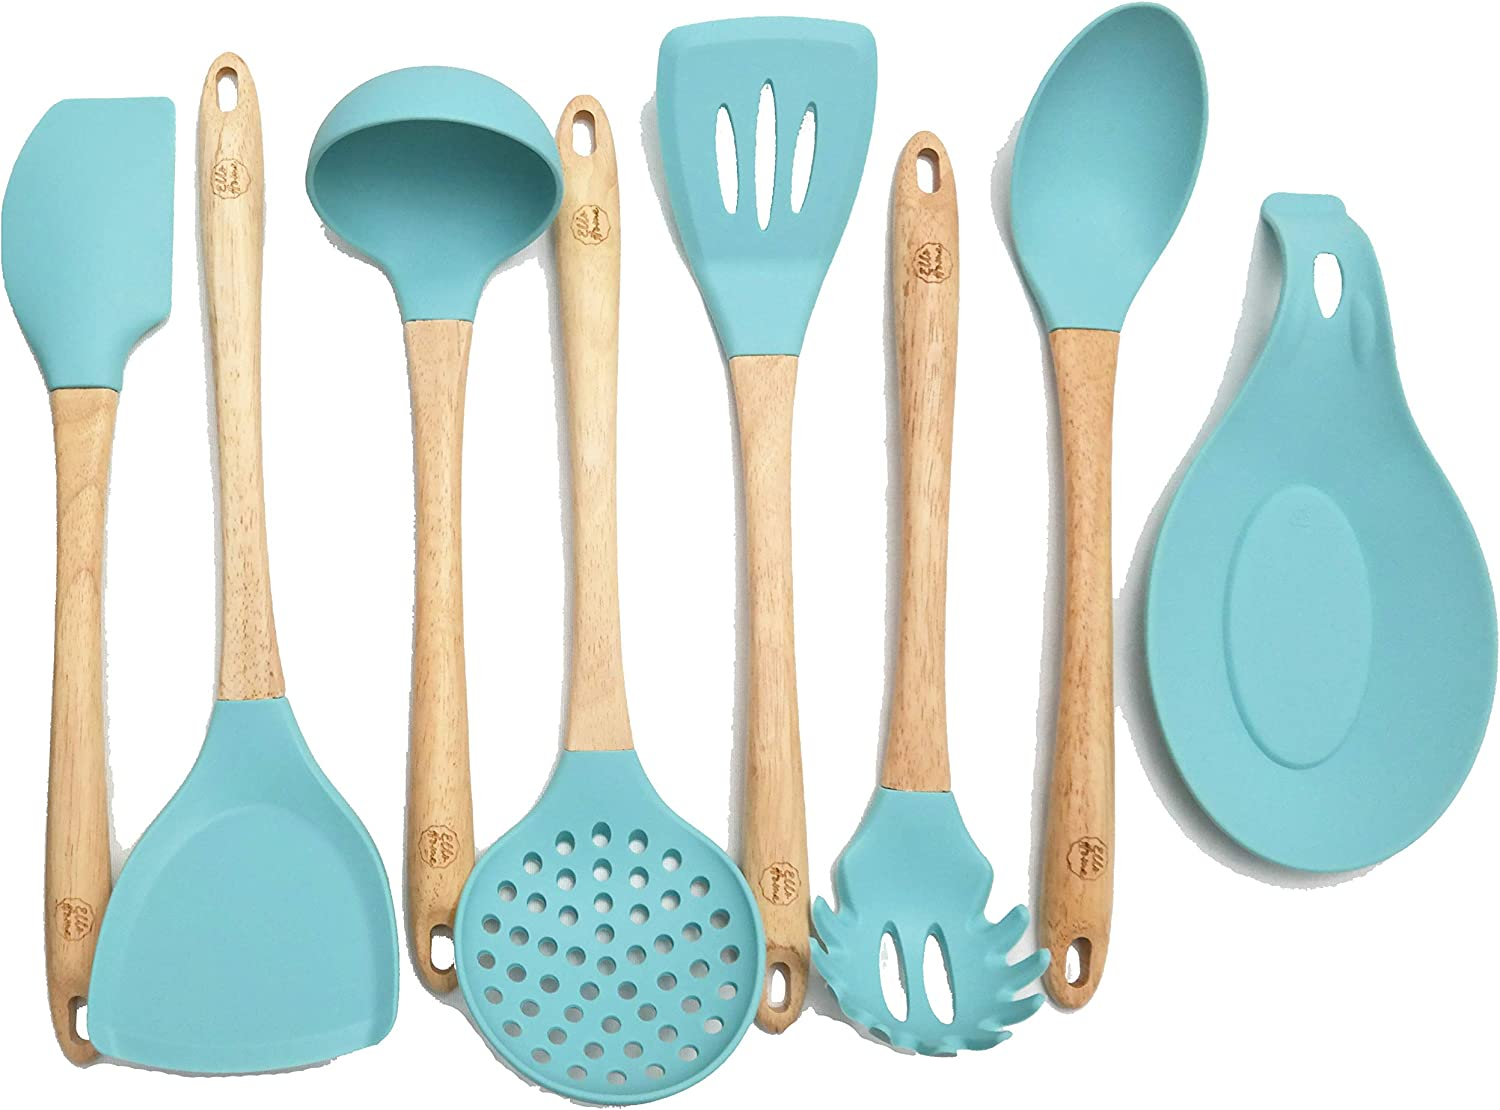 Premium Silicone Cooking Utensils Set, 8 Piece Kitchen Utensil Set with Natural Wood Handles